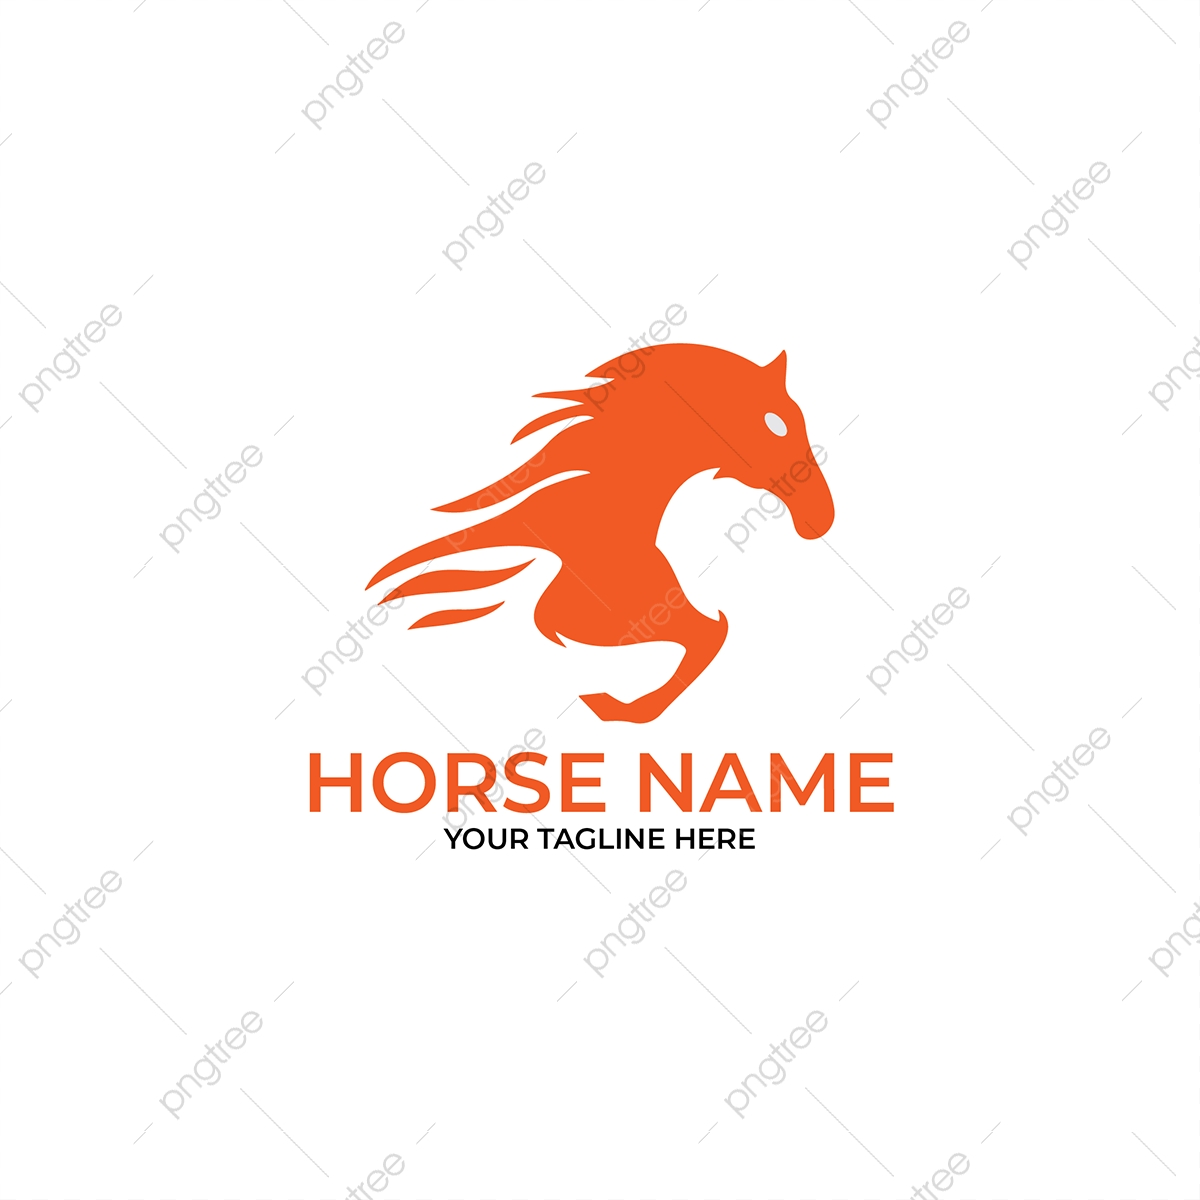 Horse Logo Png Vector Psd And Clipart With Transparent Background For Free Download Pngtree